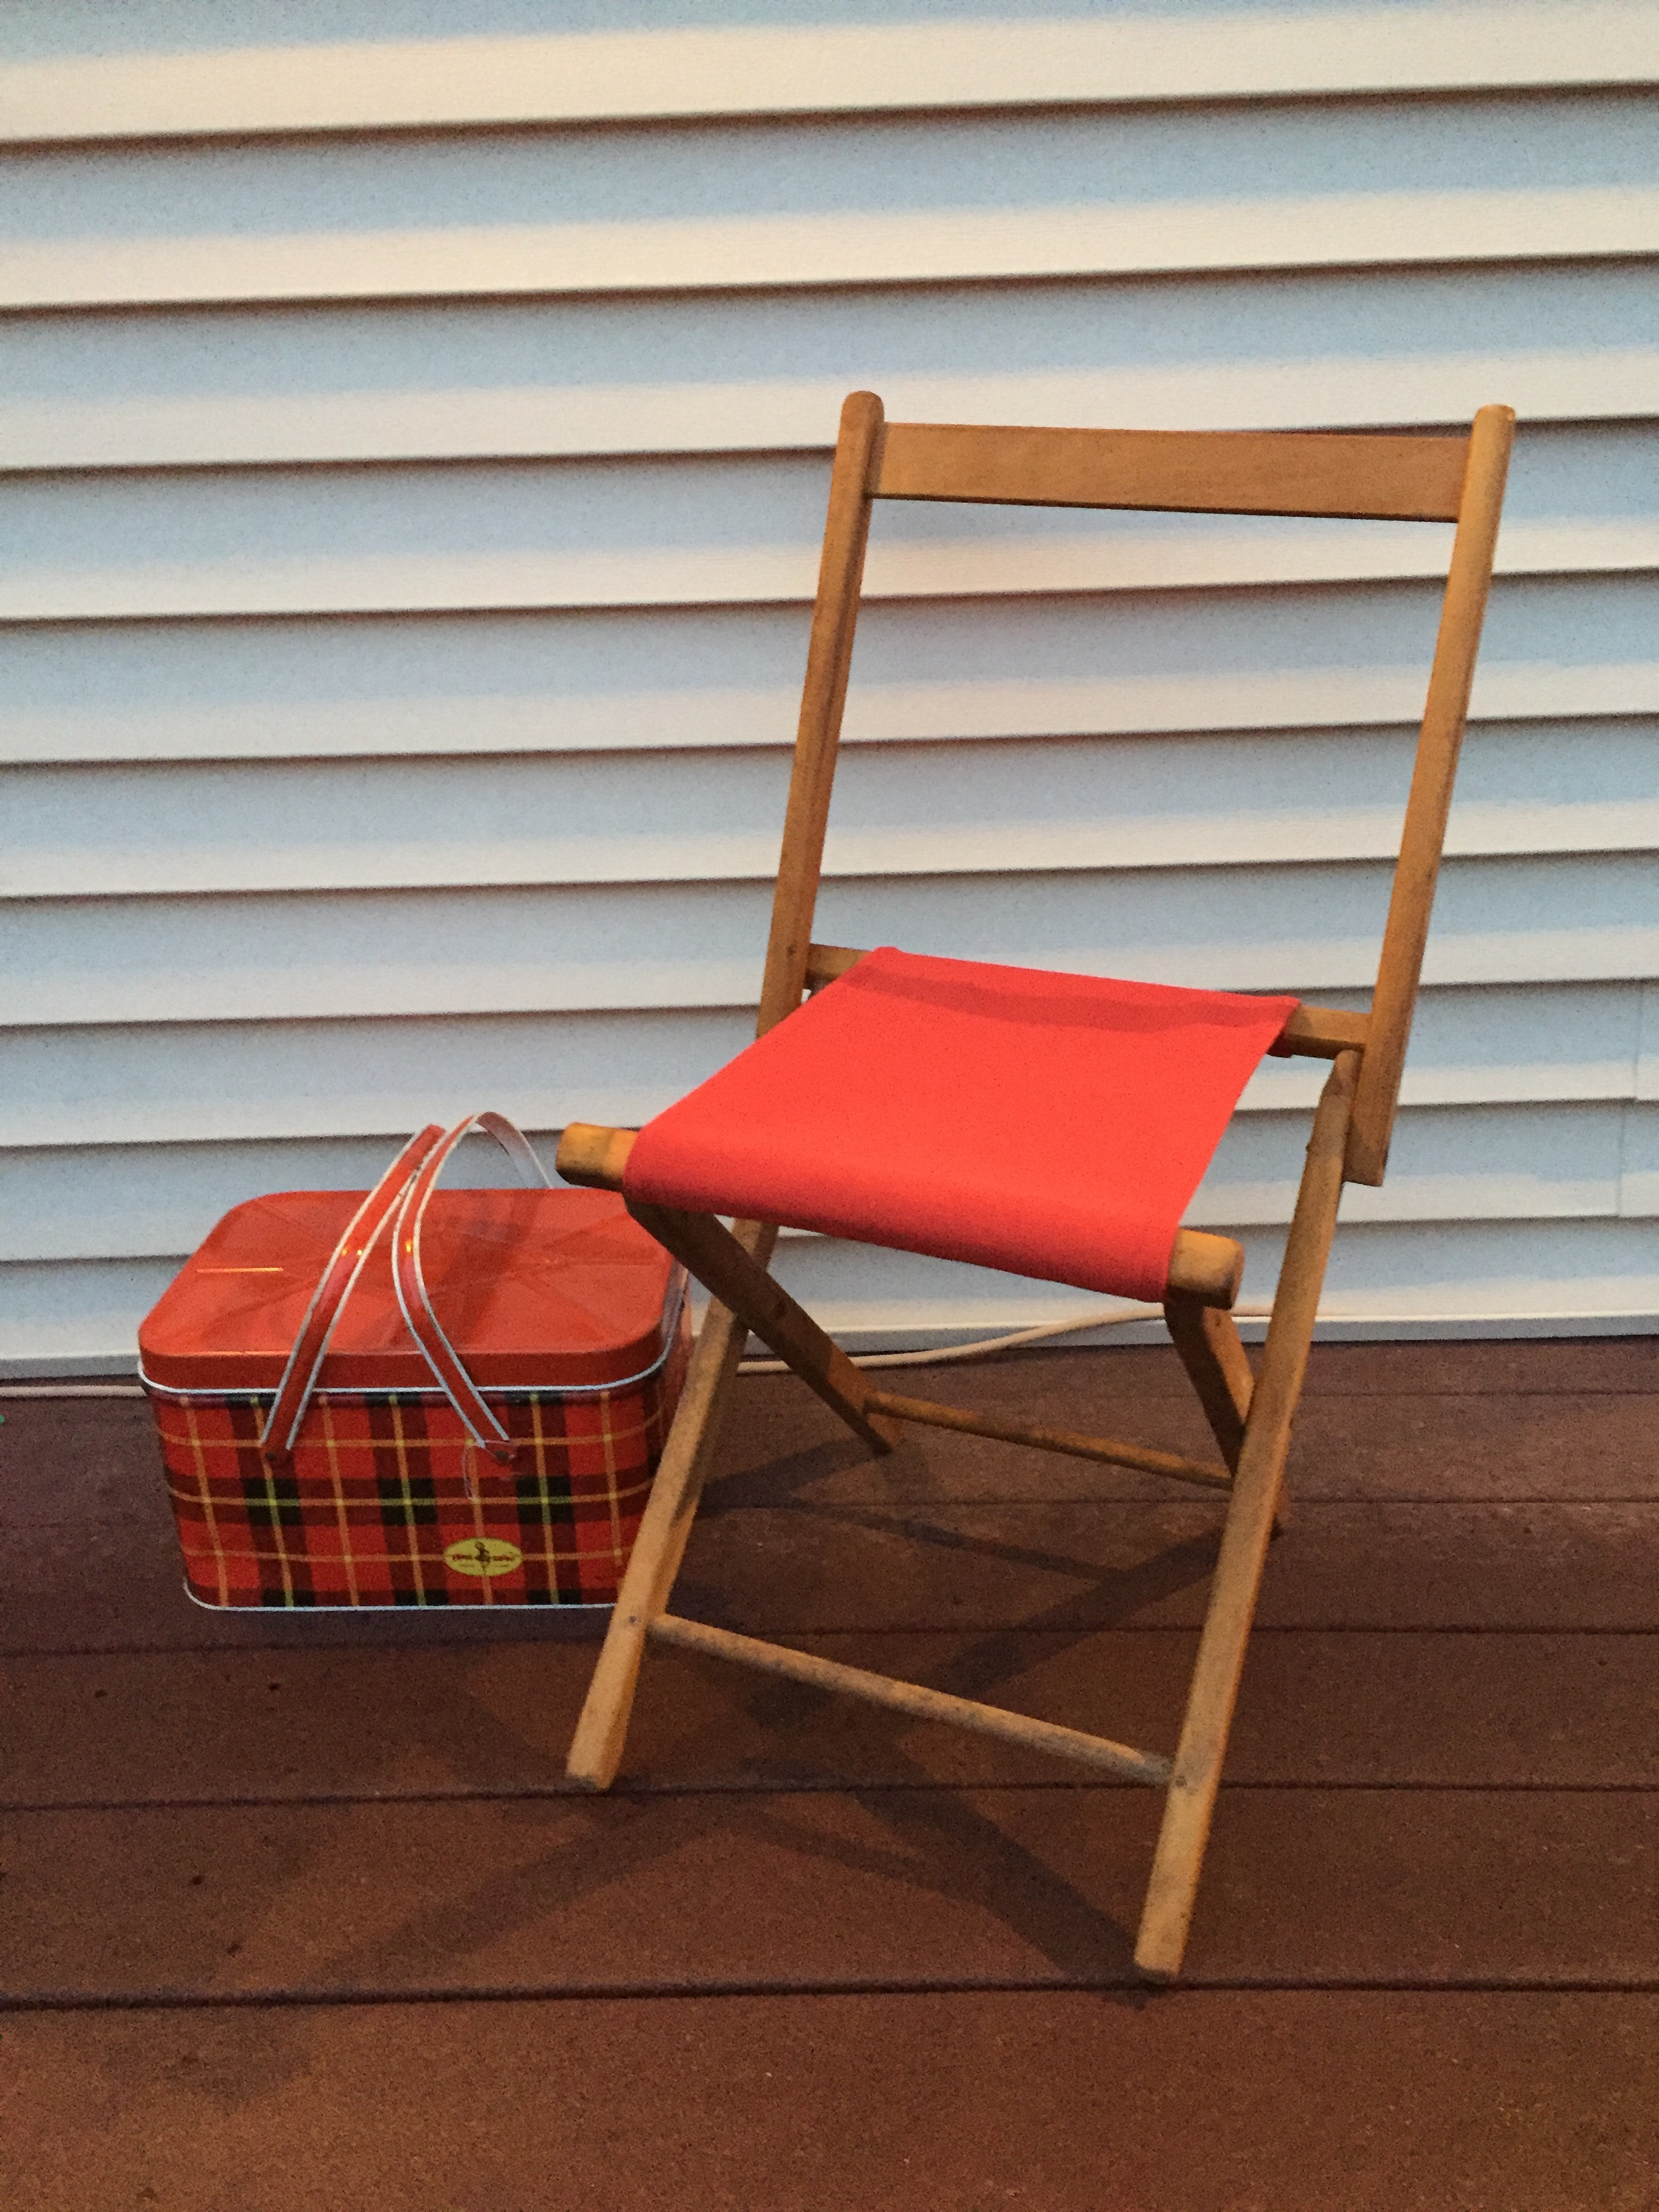 Just made this cute little camp chair a new seat. Feautures indoor/outdoor fabric from F Schumacher.  Ready to go!